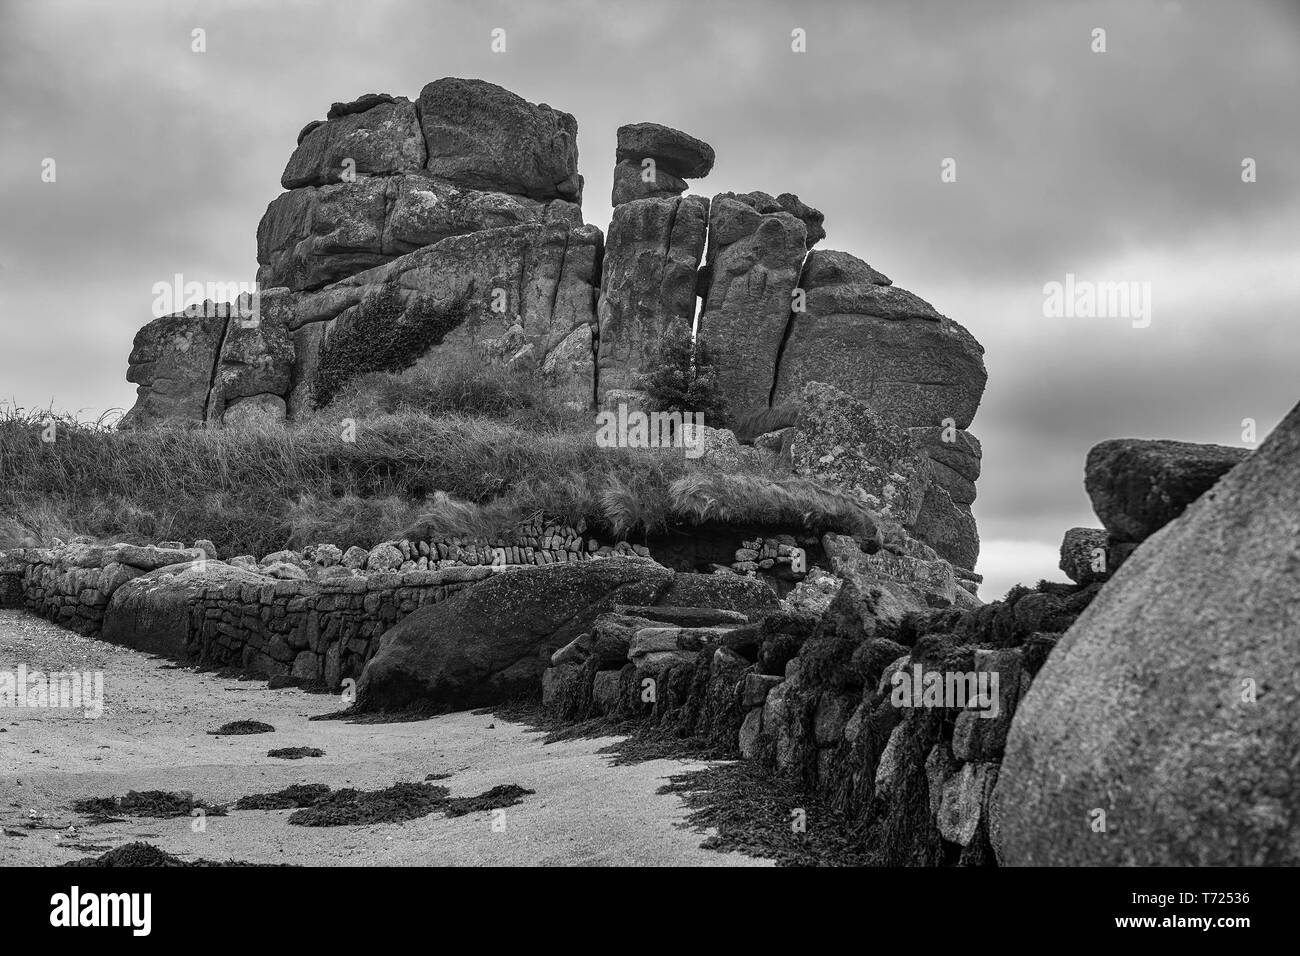 Dick's Carn (aka the Loaded Camel), Porth Hellick, St. Mary's, Isle of Scilly, UK: black and white version - Stock Image